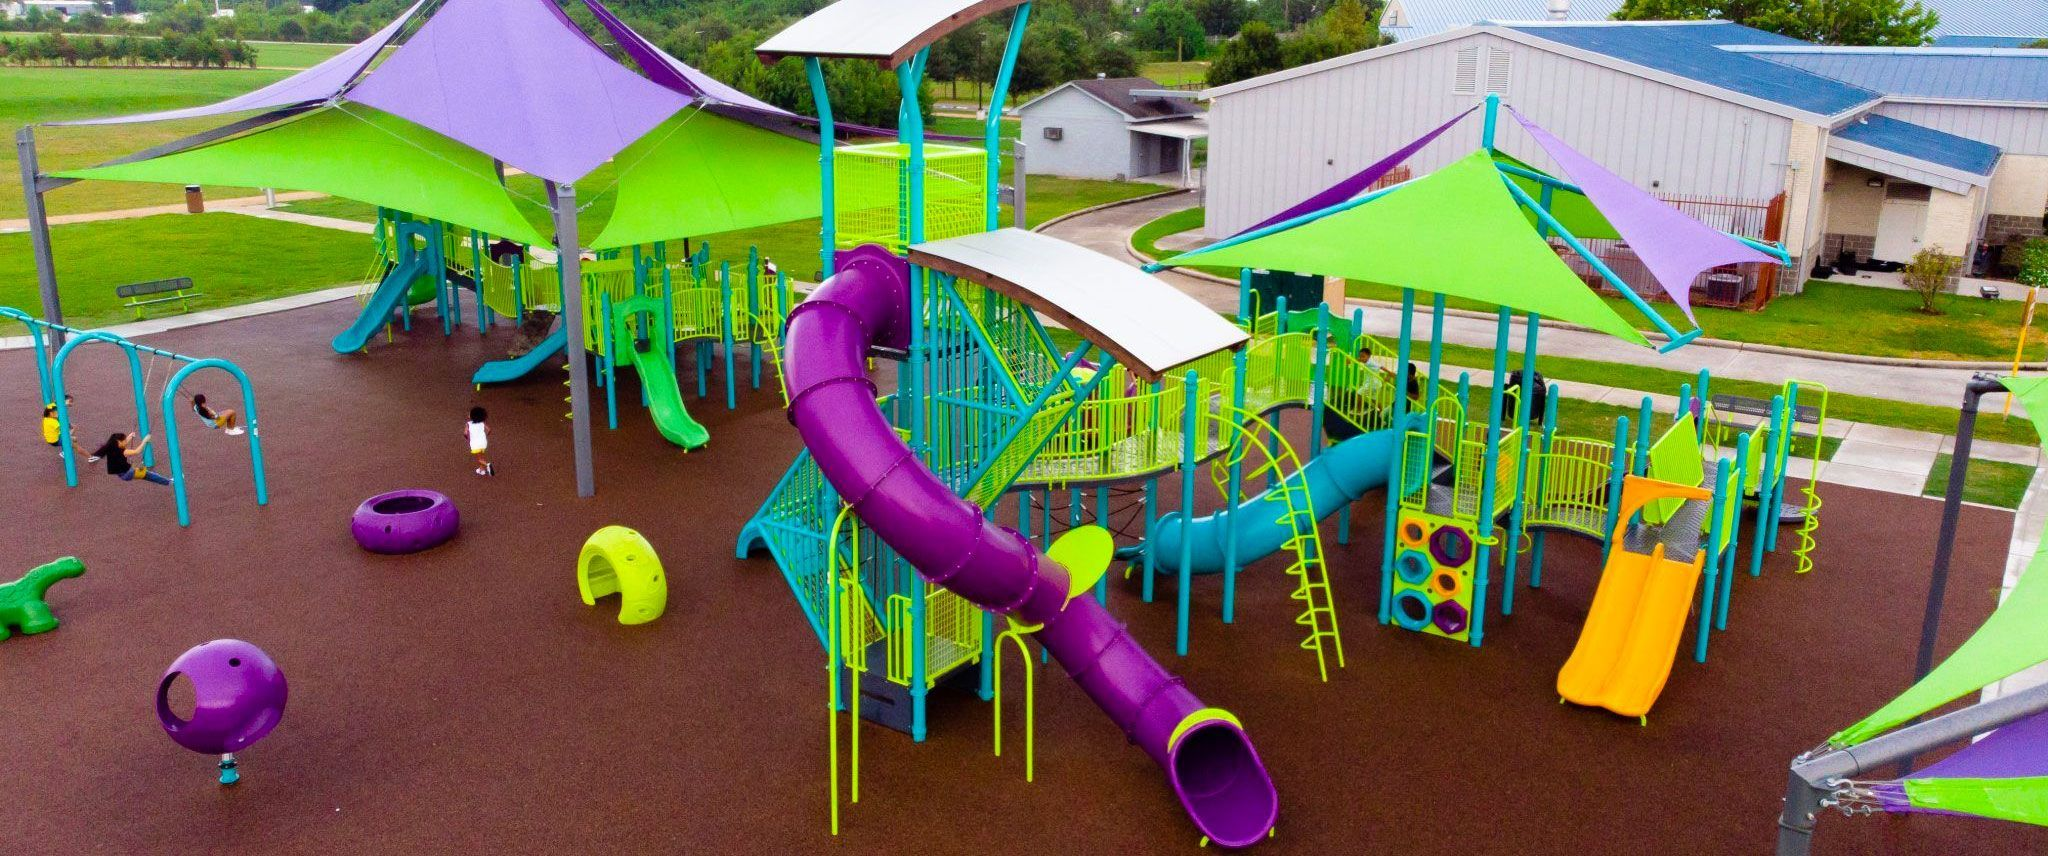 Green and purple playground structures